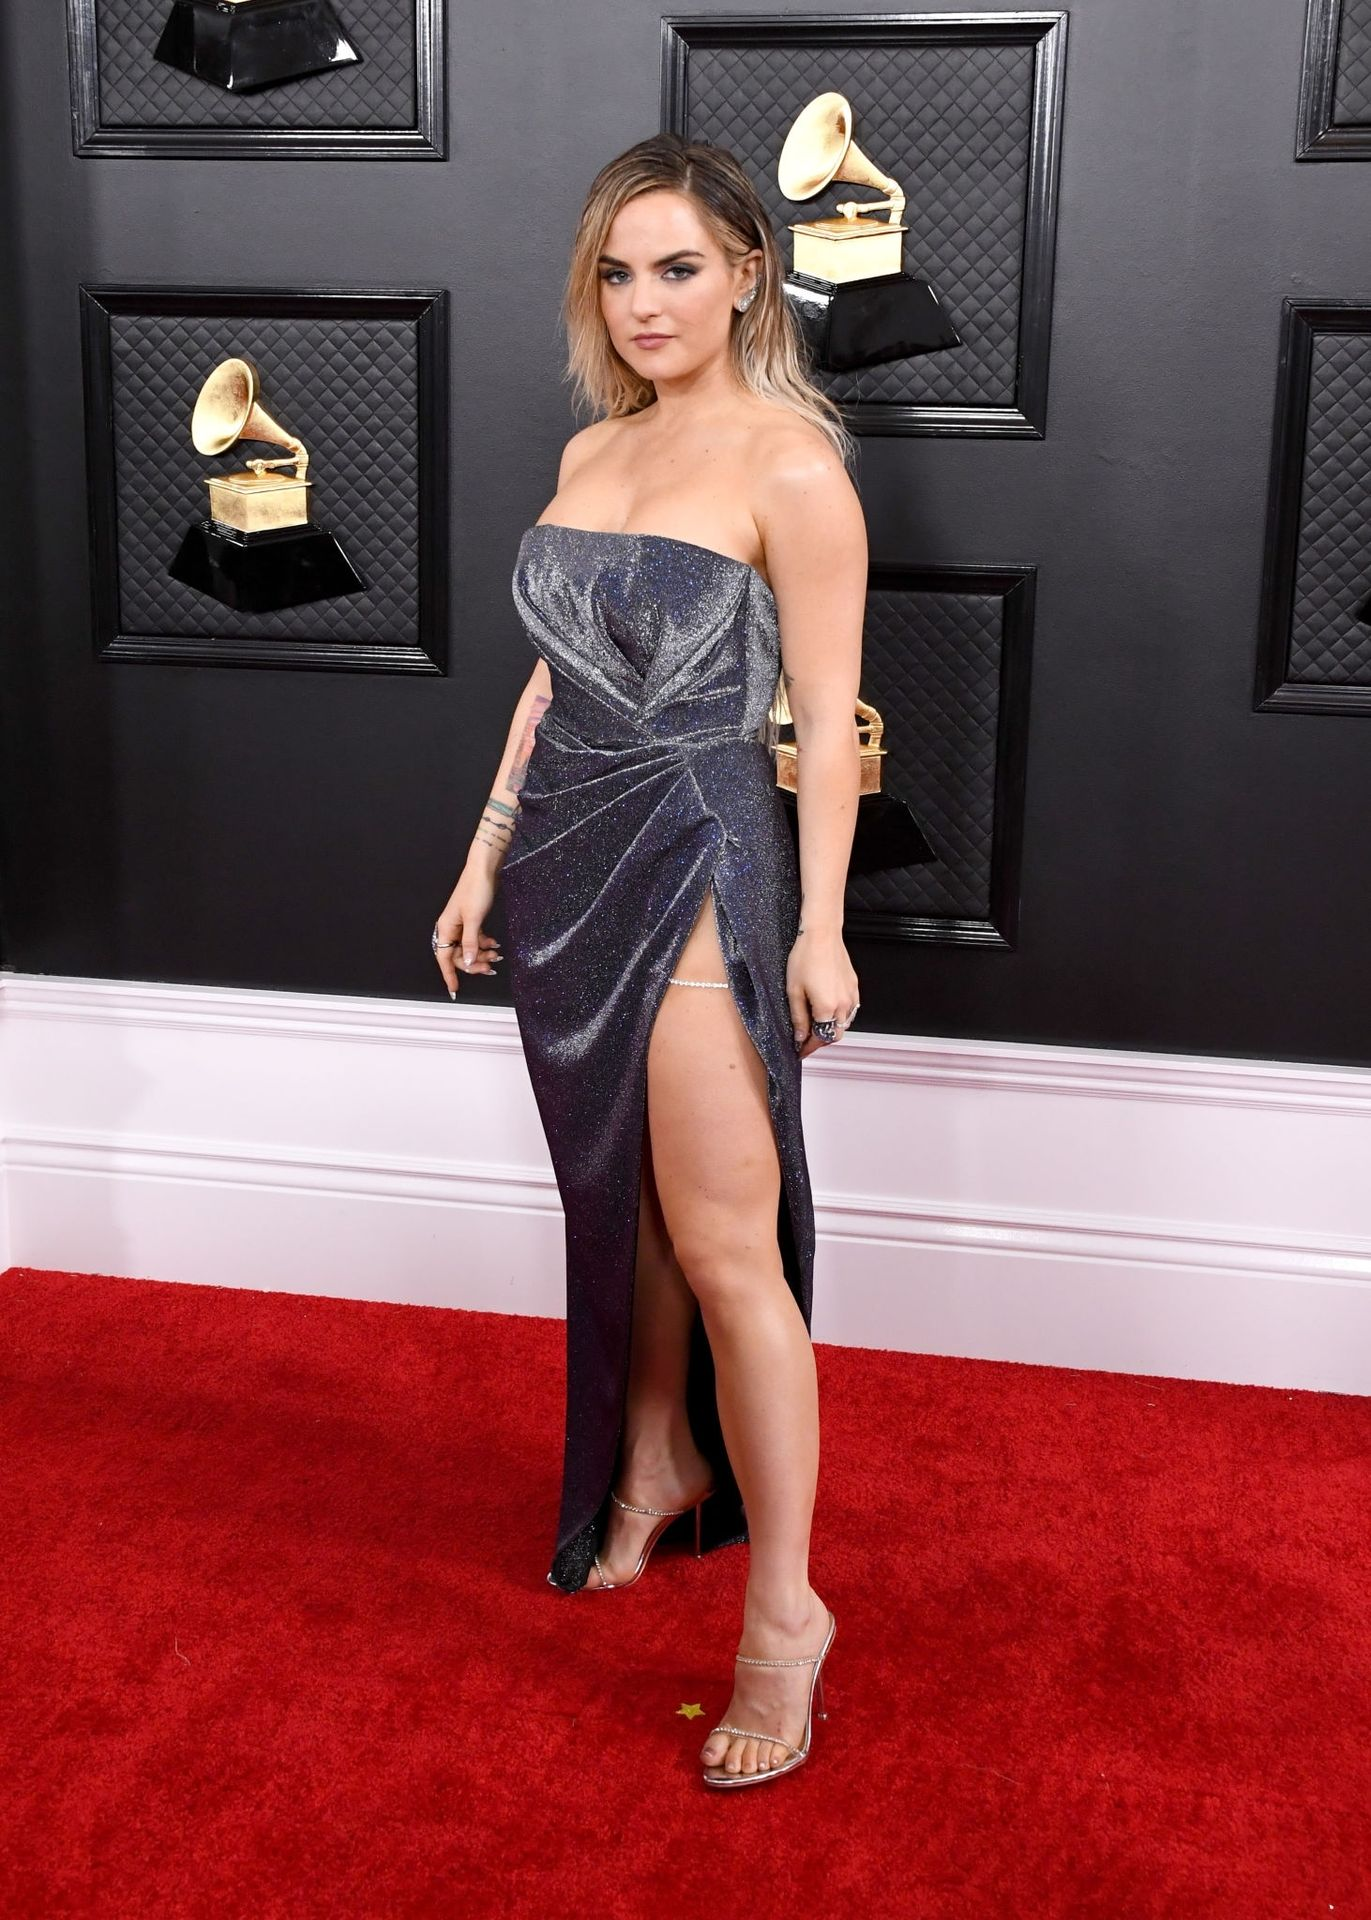 Jojo Shows Her Legs And Cleavage At The 62nd Annual Grammy Awards 0012